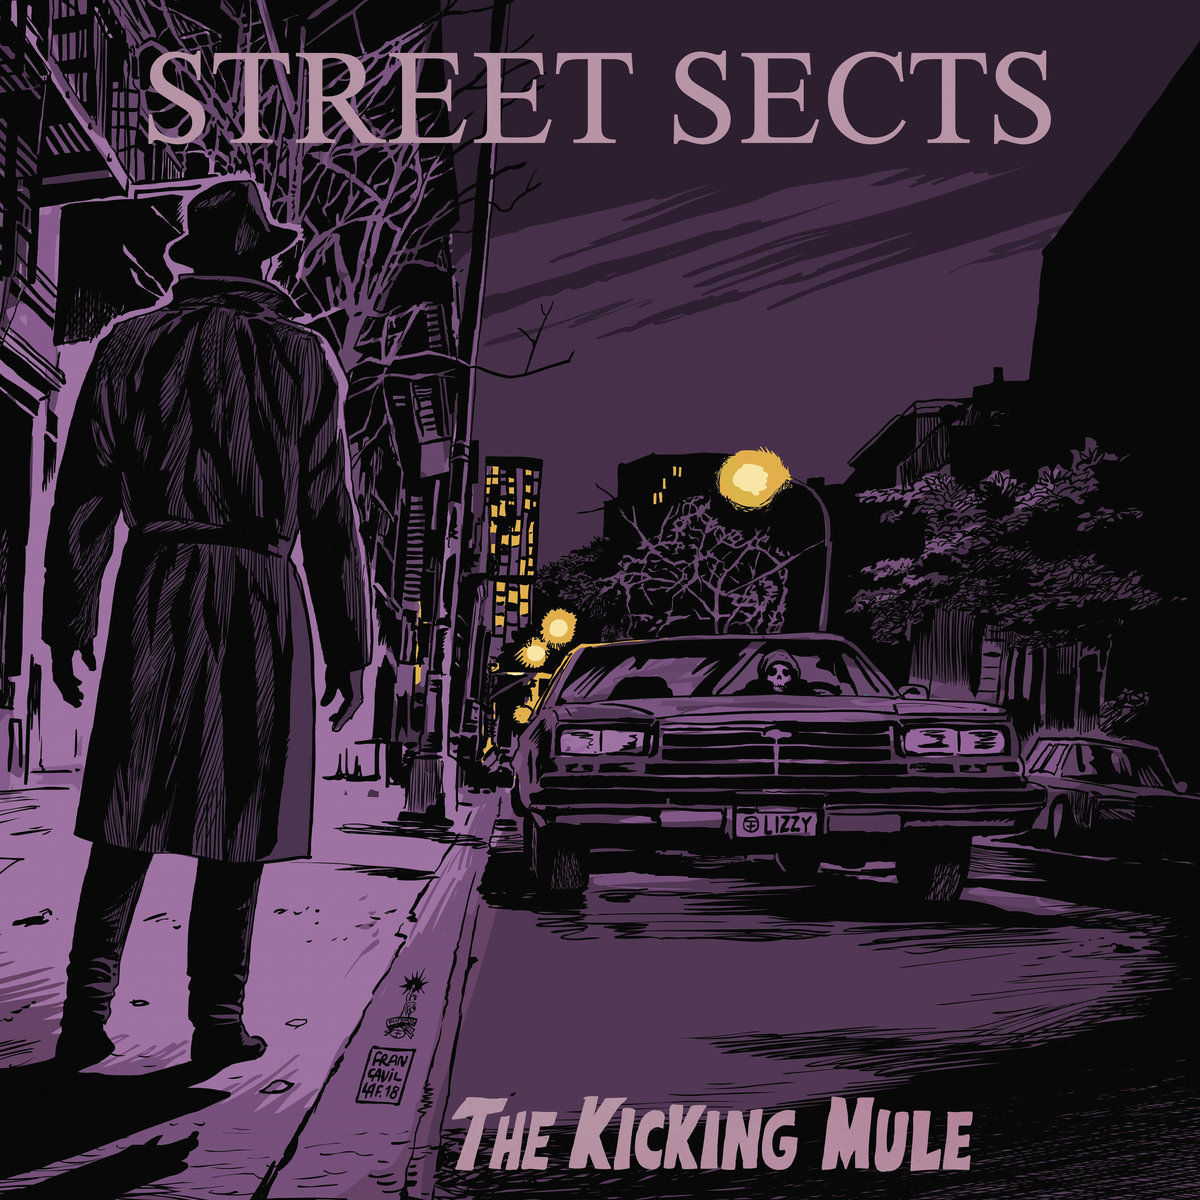 """Street Sects, """"The Kicking Mule"""""""